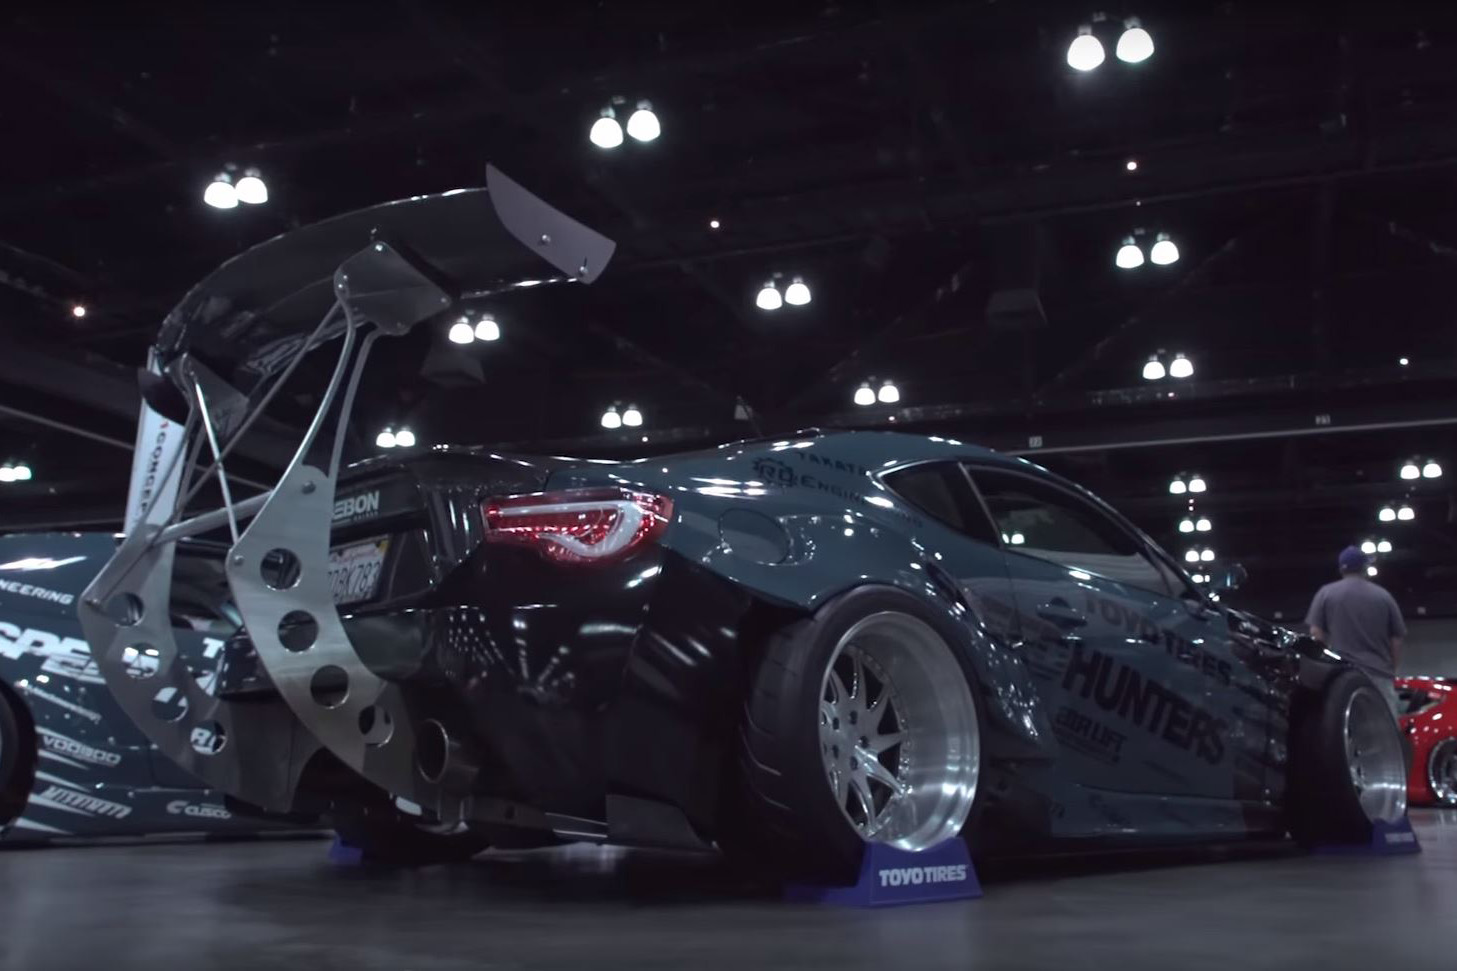 Video Autocon La Showcasing Some Of The Best Custom Cars The - Custom car show videos